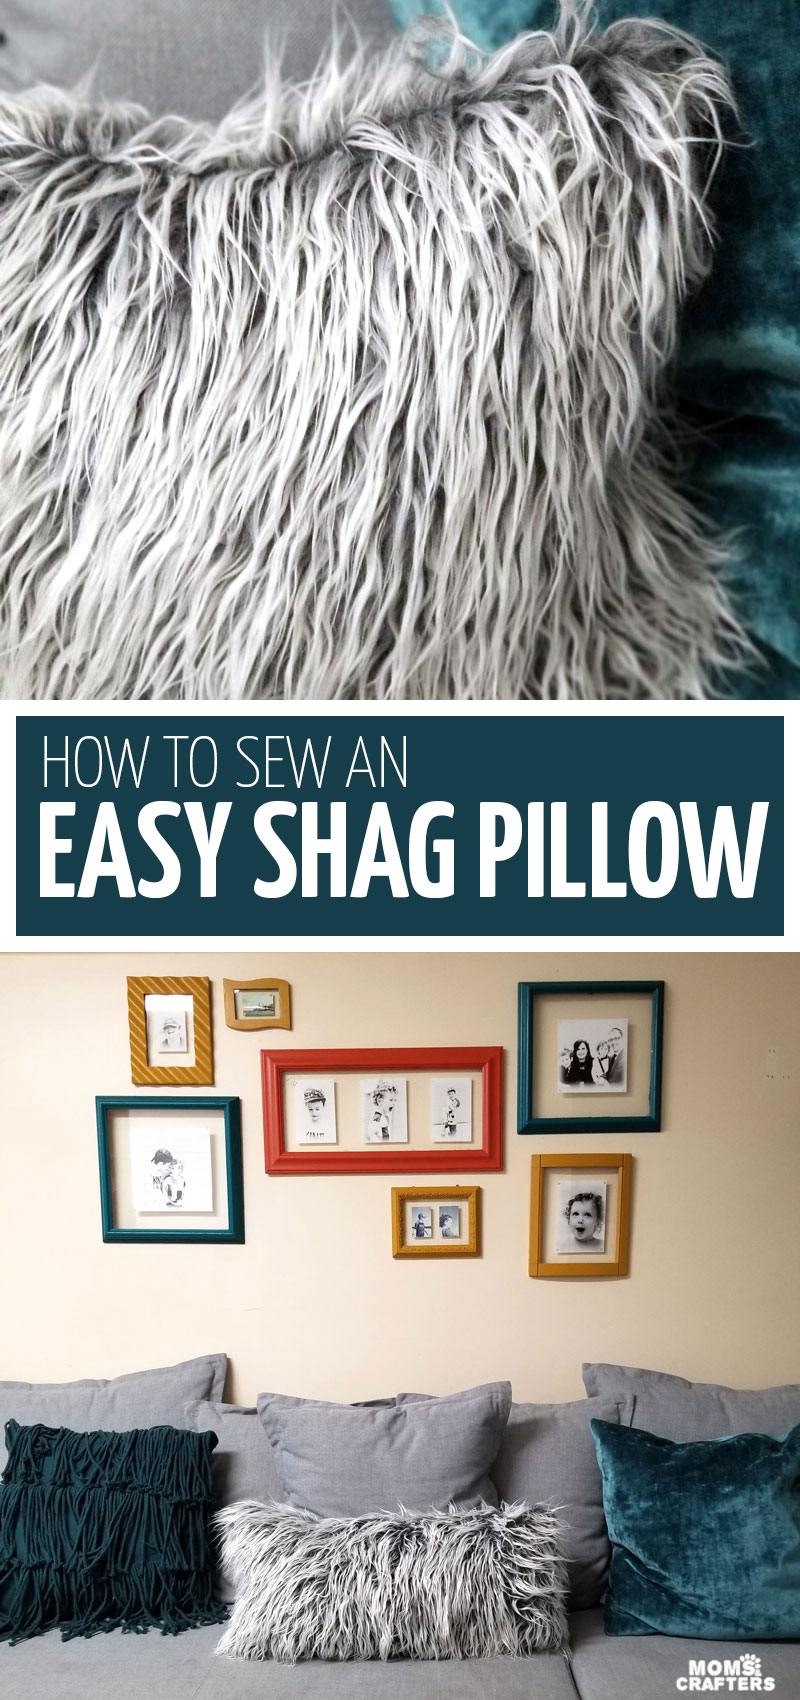 Click to learn how to make a DIY fur pillow - an easy cozy home decor idea for winter! This shag pillow uses faux fur and is a beginner sewing project that also teaches how to sew faux fur.